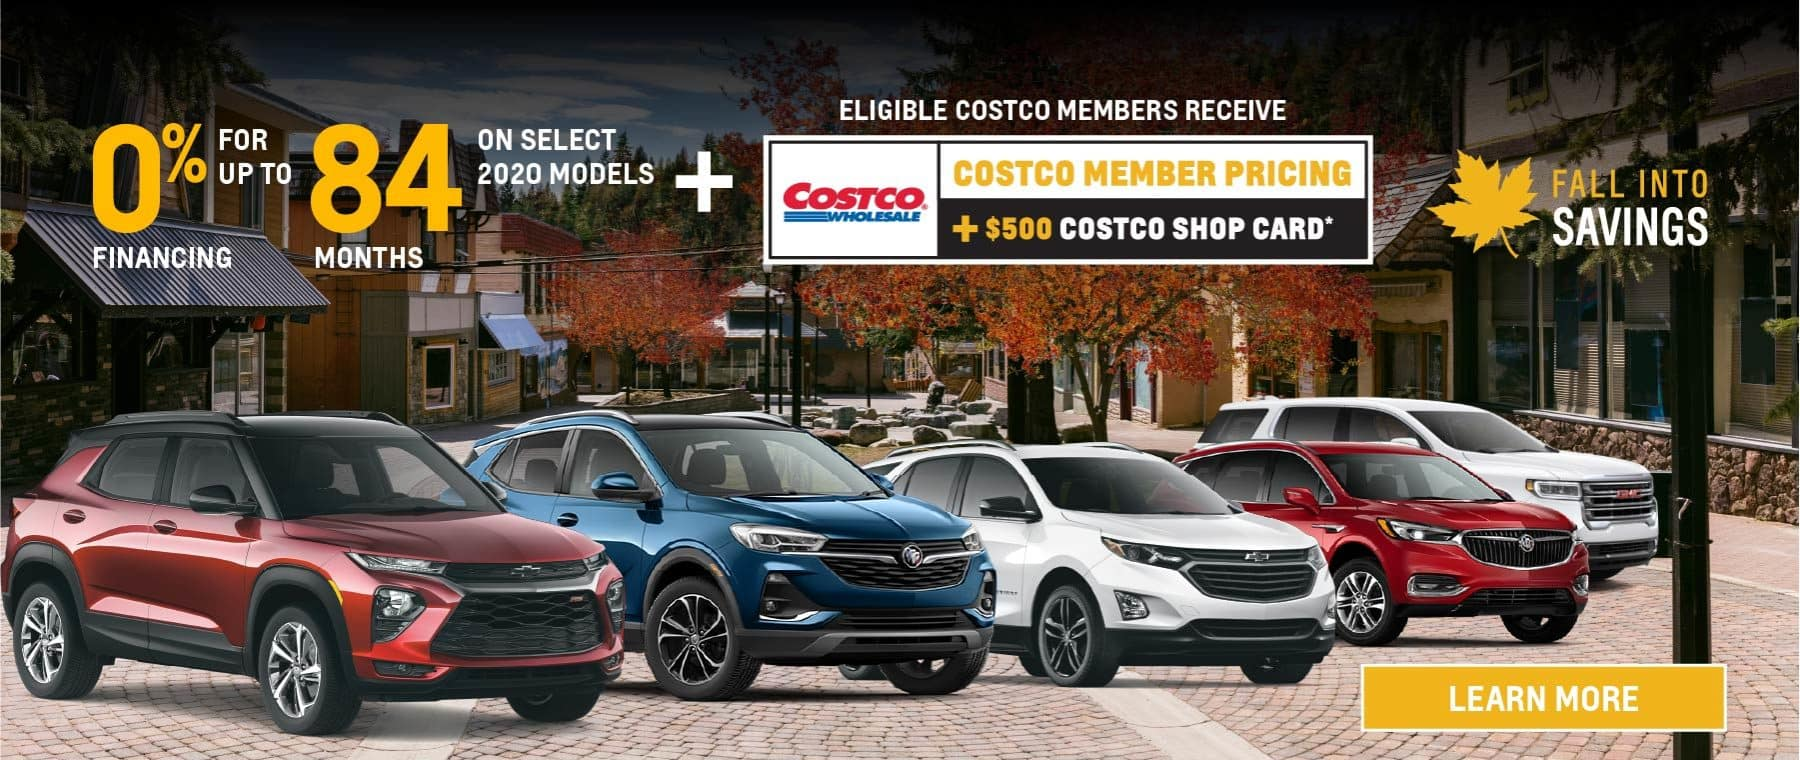 Costco Dealerinspire Banner 1800x760V2